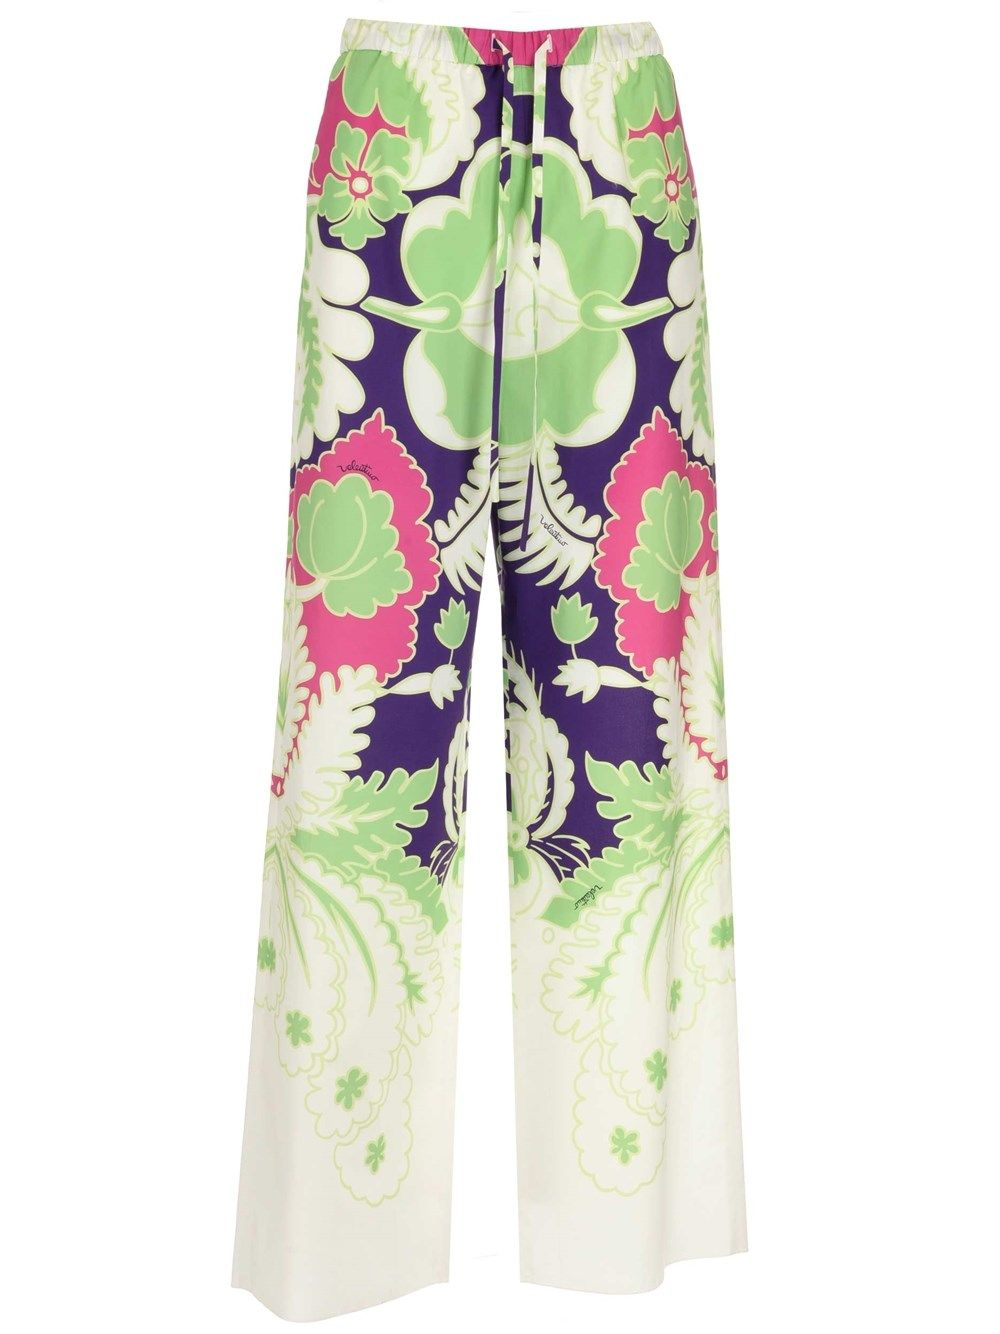 Valentino VALENTINO WOMEN'S MULTICOLOR OTHER MATERIALS PANTS